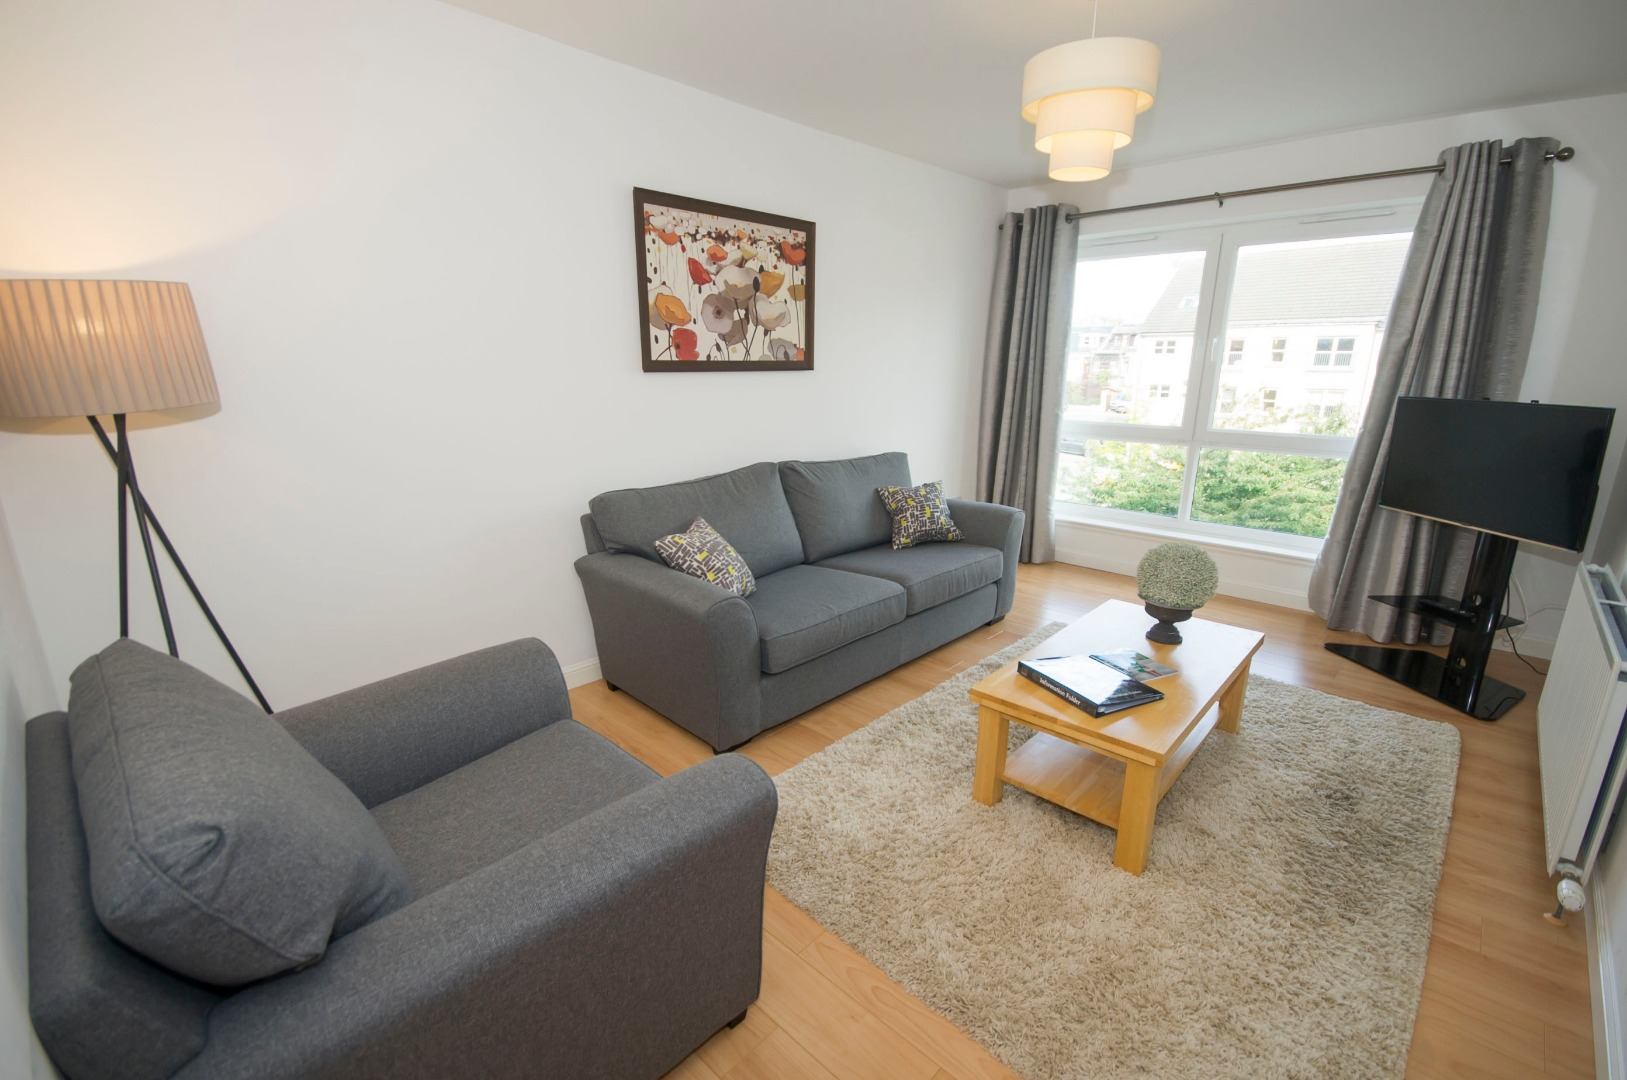 Aberdeen-Corporate-Luxury-Accommodation---Portland-Street-Apartments-Near-Union-Square-Shopping-Centre---Urban-Stay-4